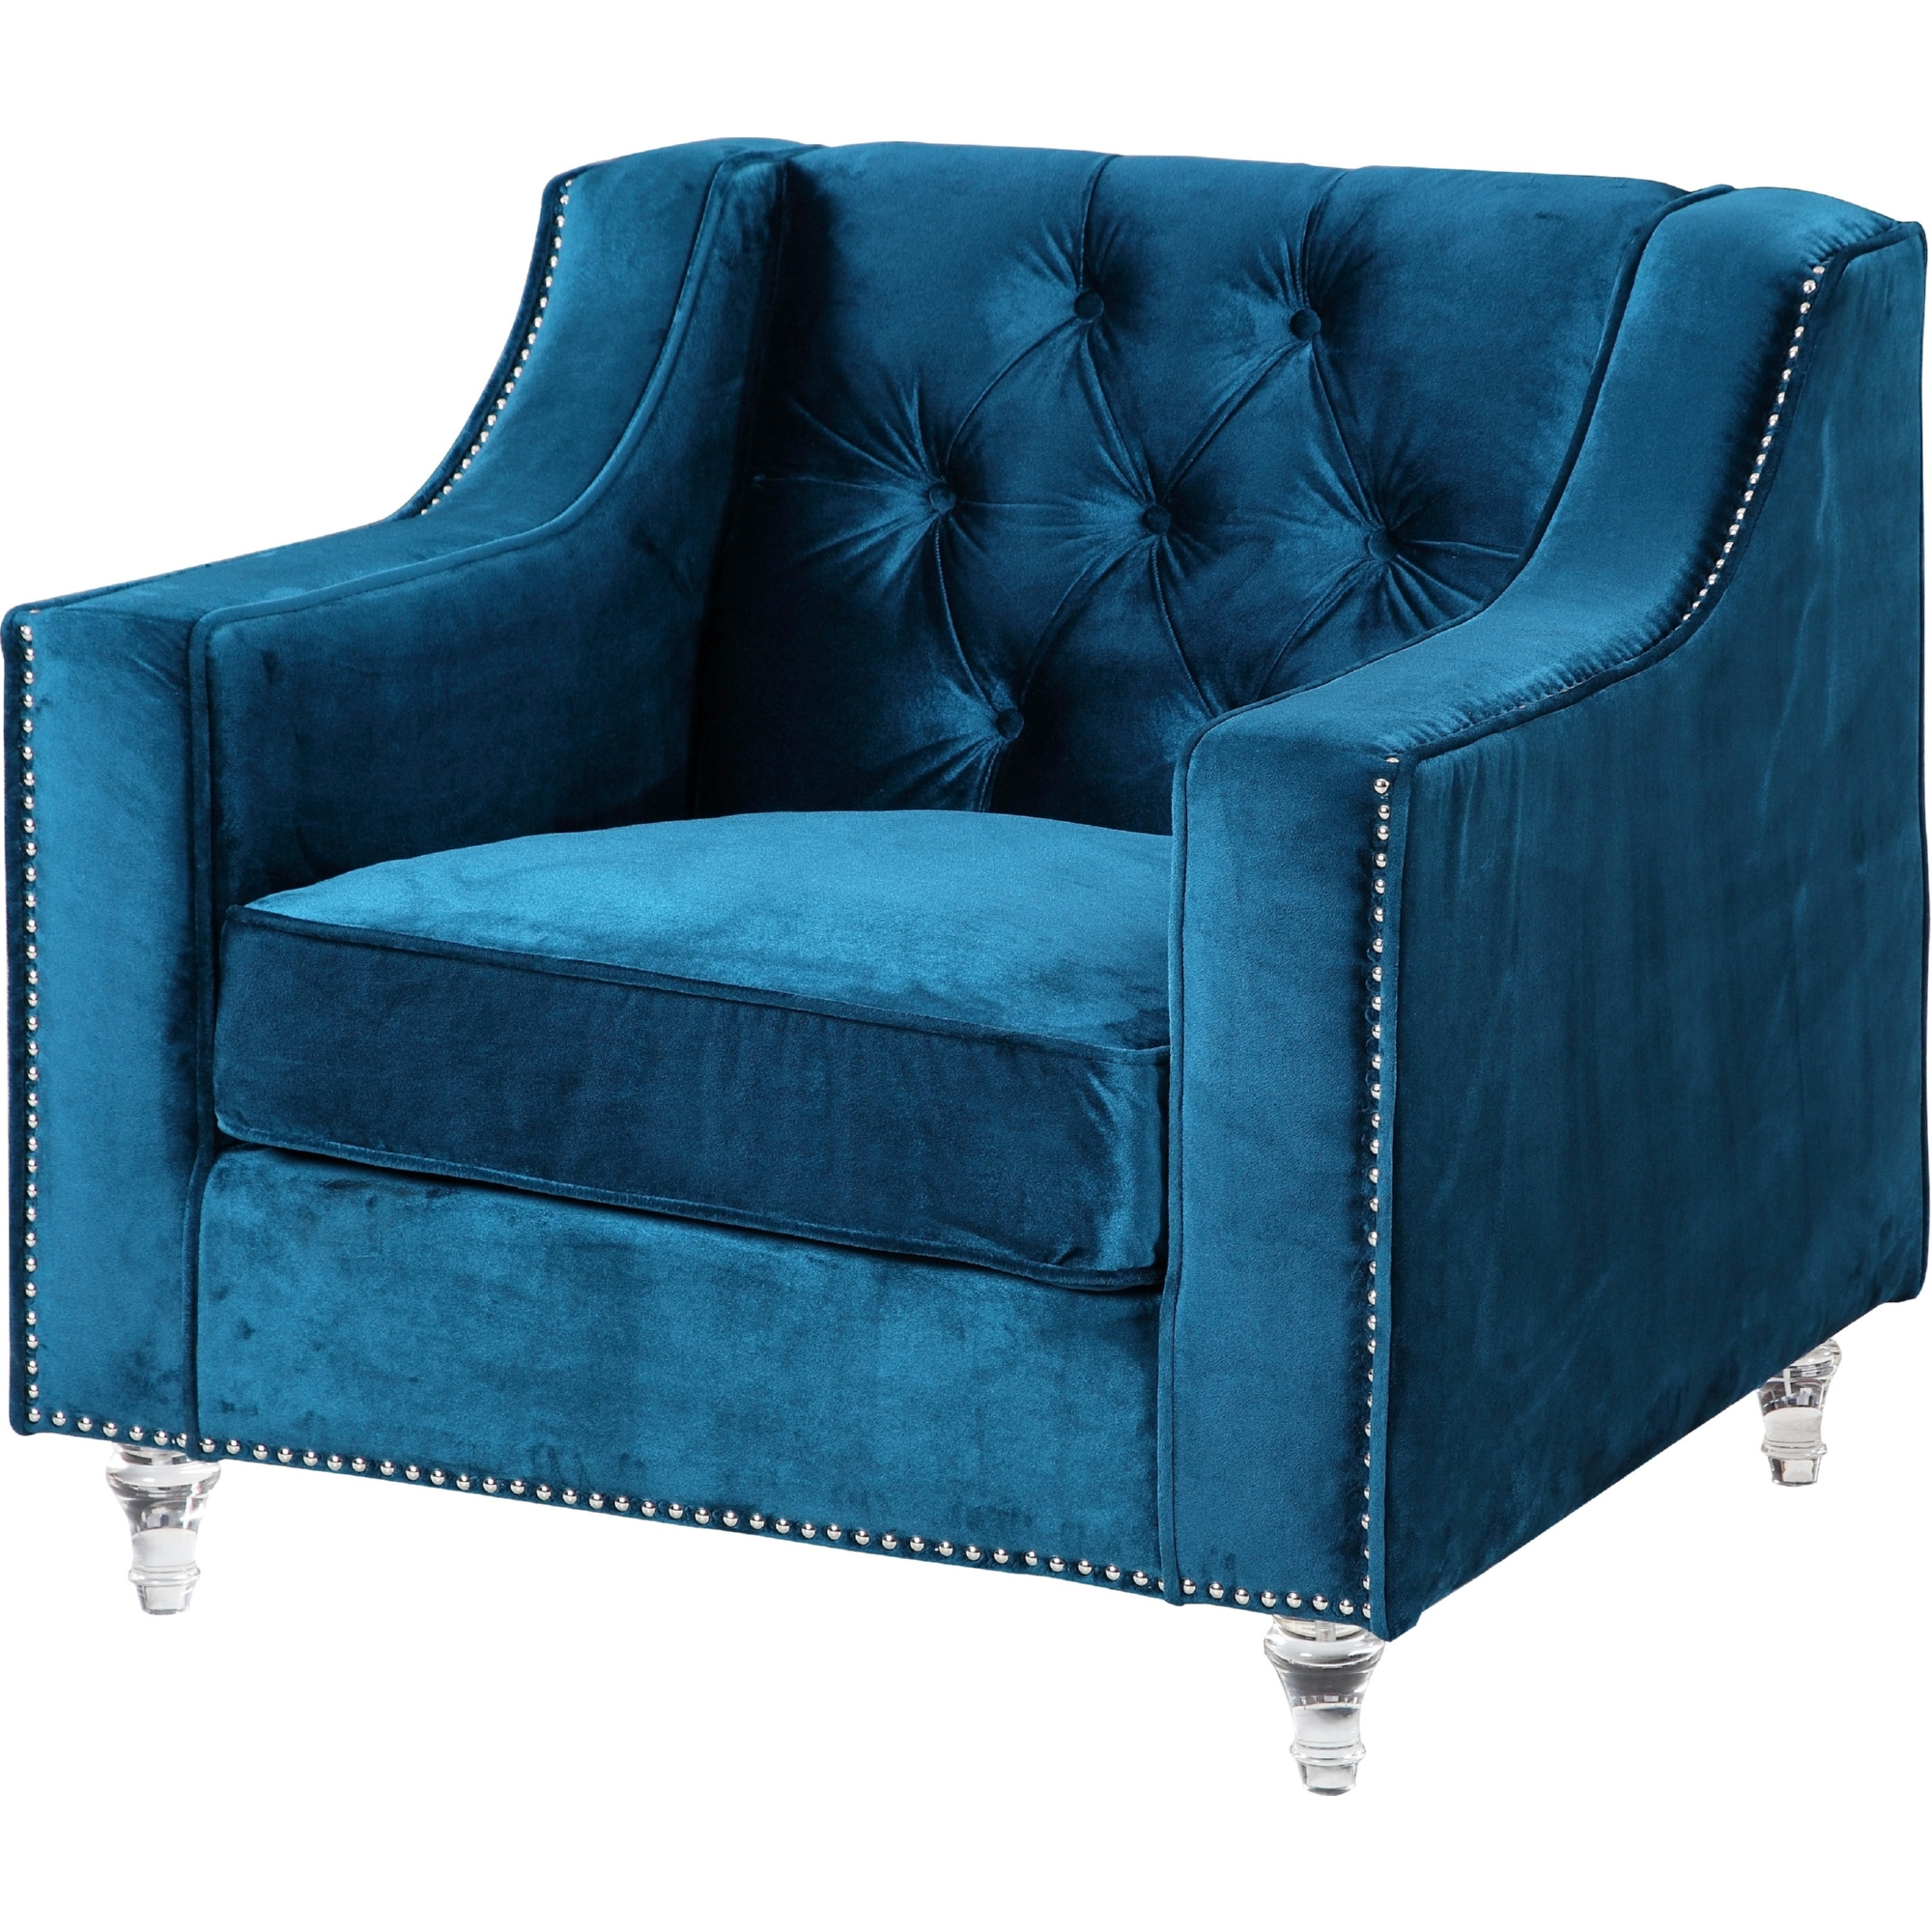 navy blue velvet club chair saucer slipcover chic home fcc2574 dylan in tufted on round acrylic feet